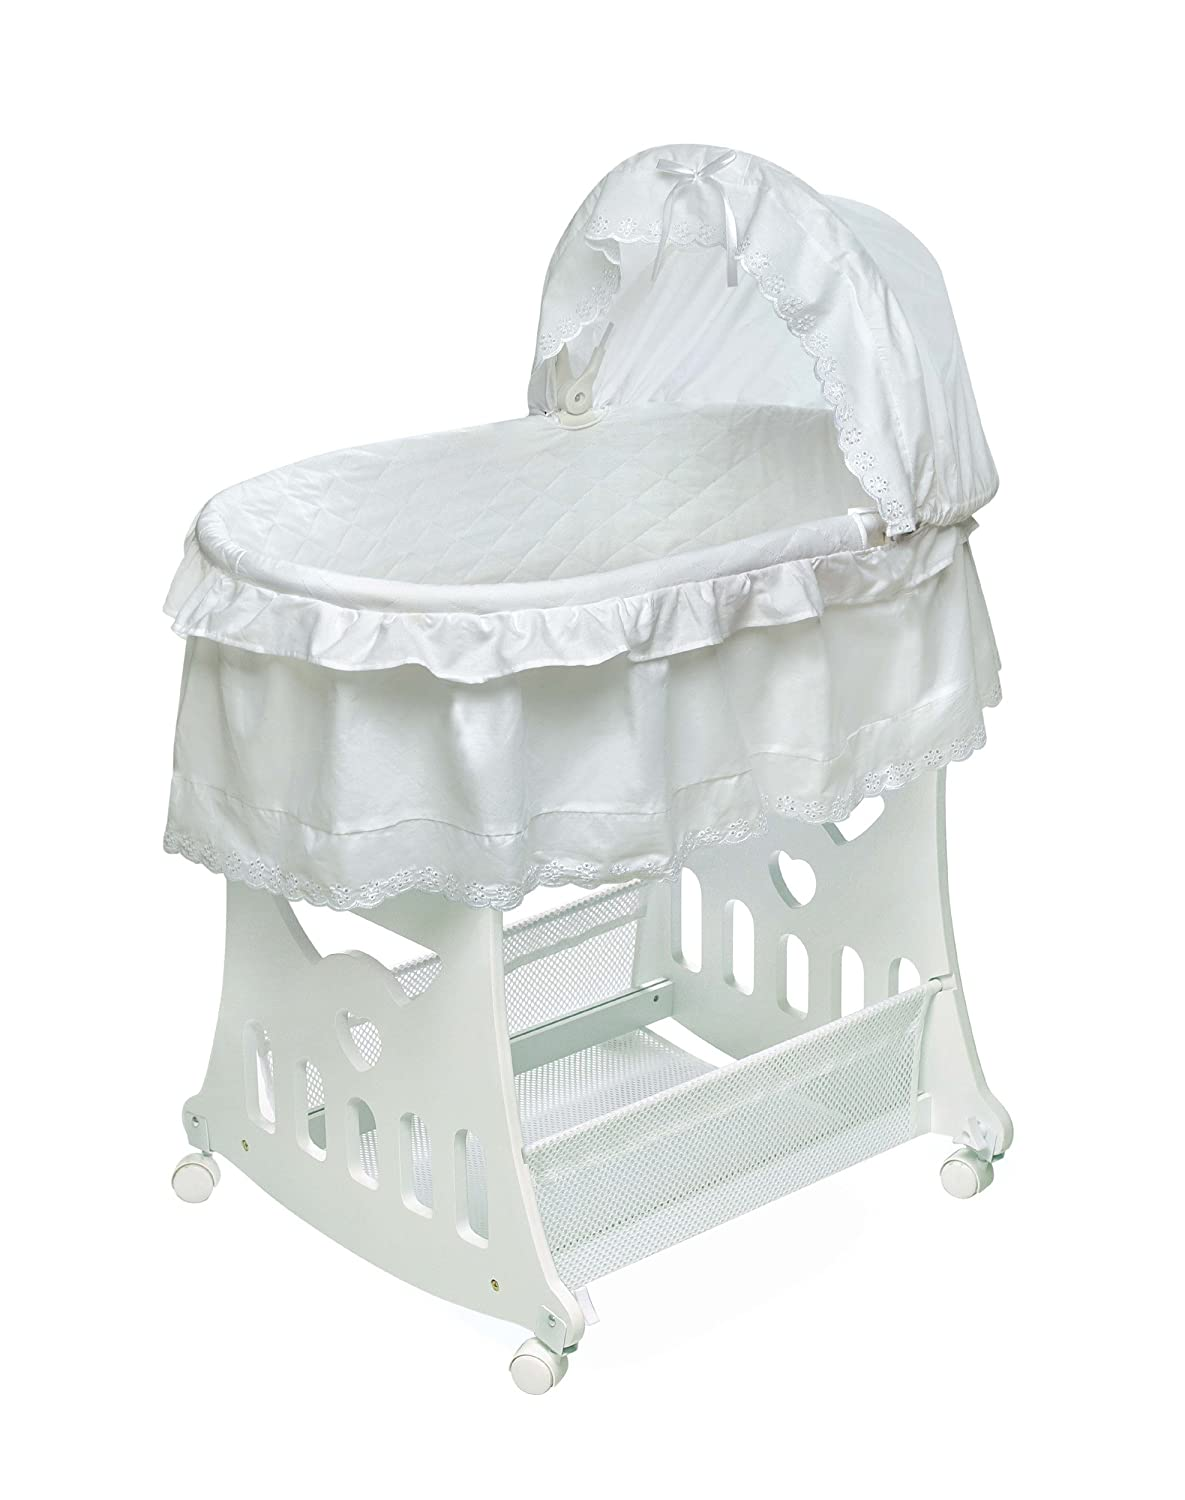 Awesome Amazon.com : Badger Basket Portable Bassinet U0027N Cradle With Toybox Base,  Blue : Bassinets And Cradles : Baby